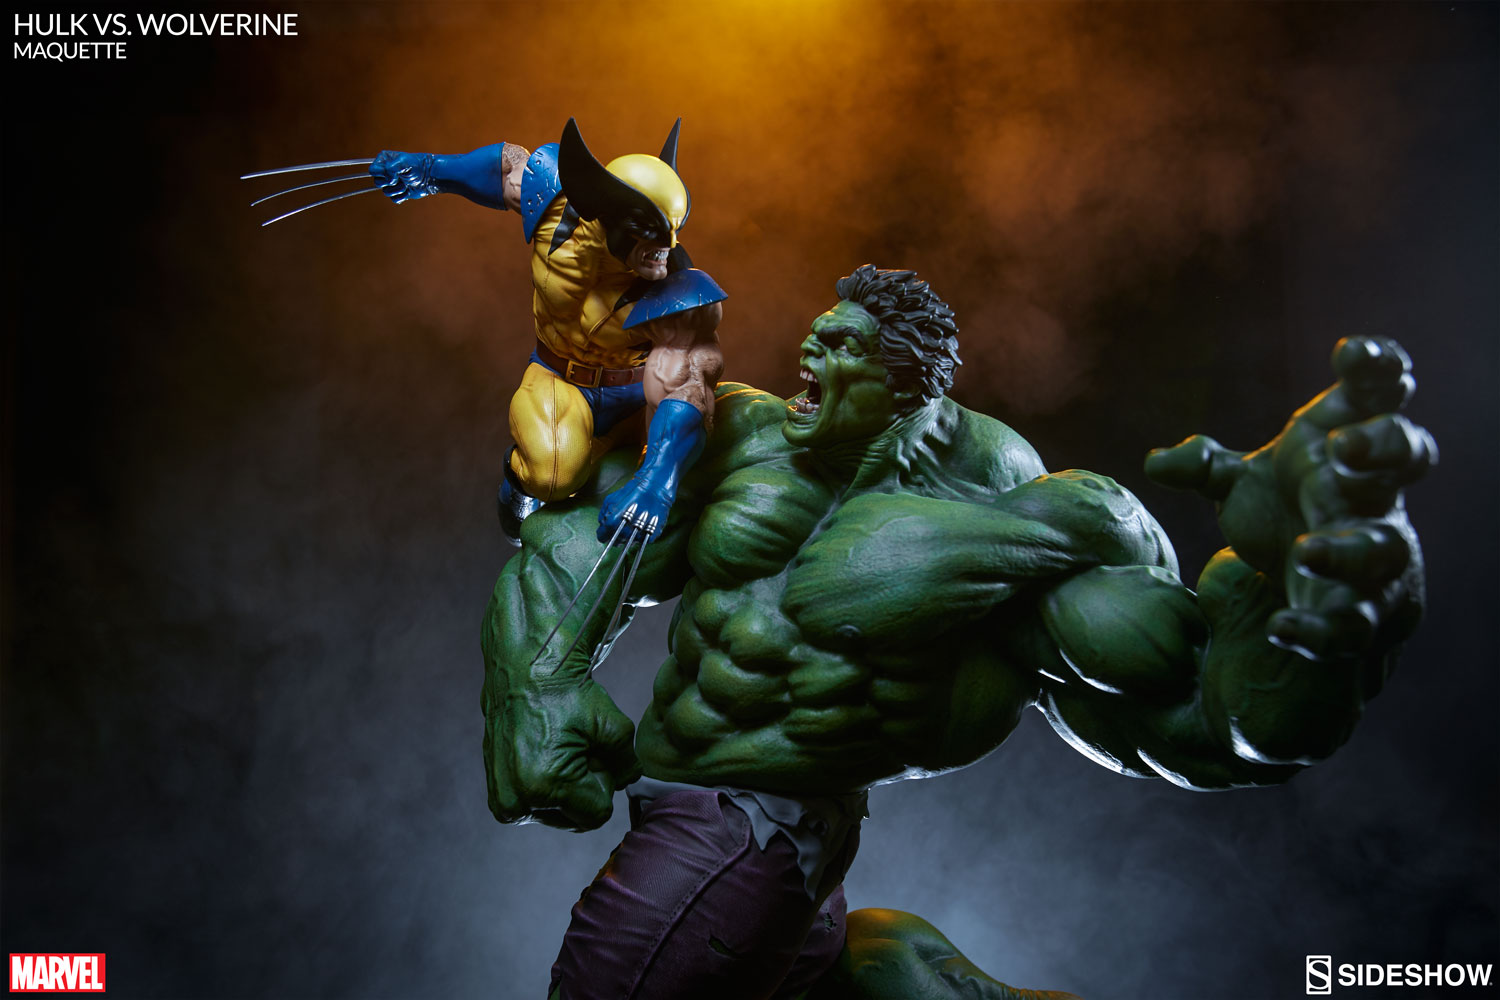 Avengers Assemble Wallpaper Hd Hulk Vs Wolverine A Meeting Of The Mighty Sideshow